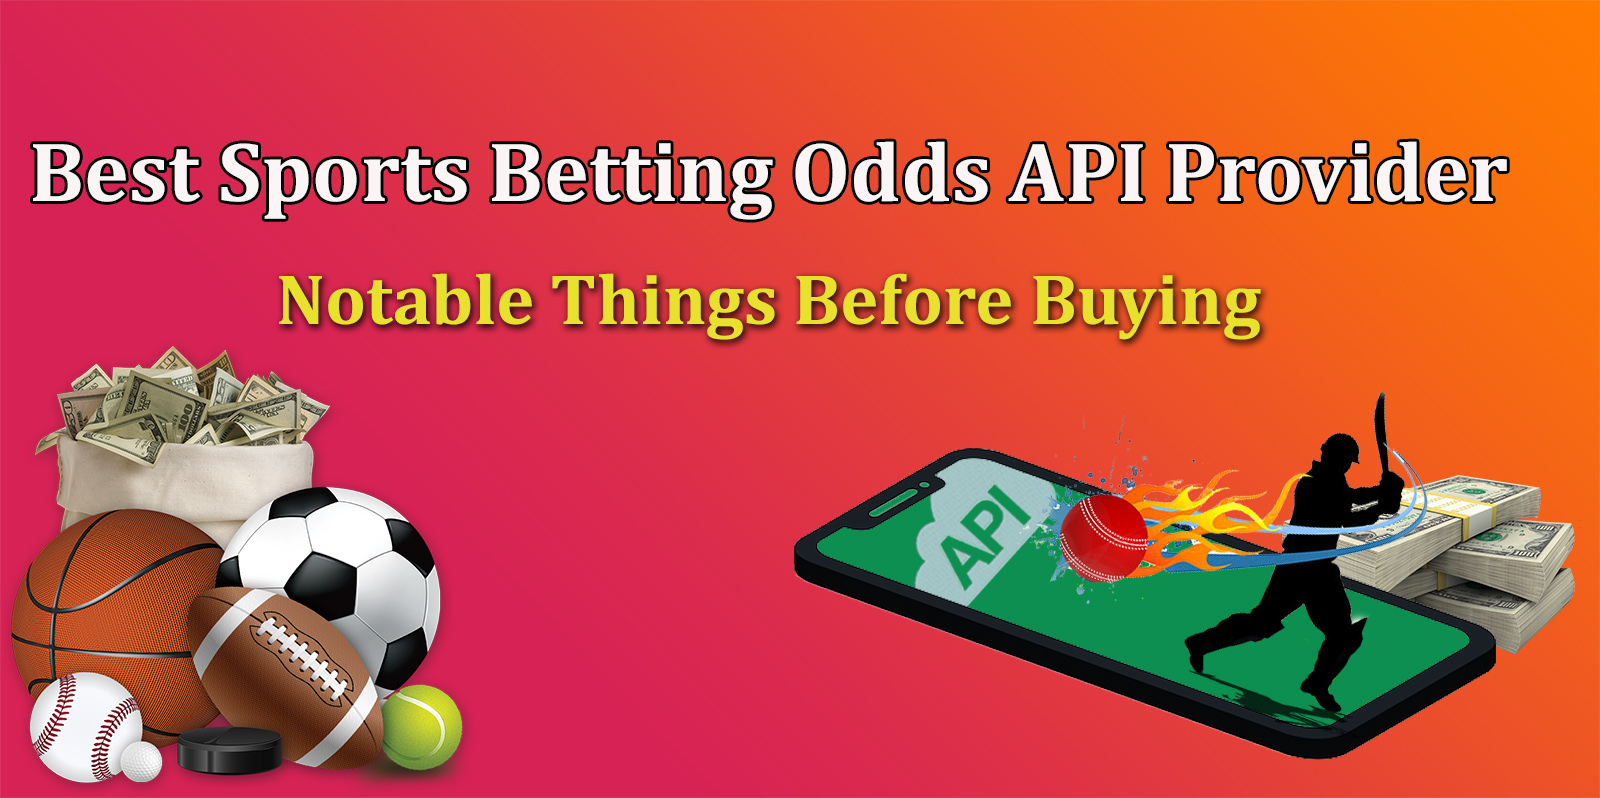 Best Sports Betting Odds API Providers -  Notable Things Before Buying